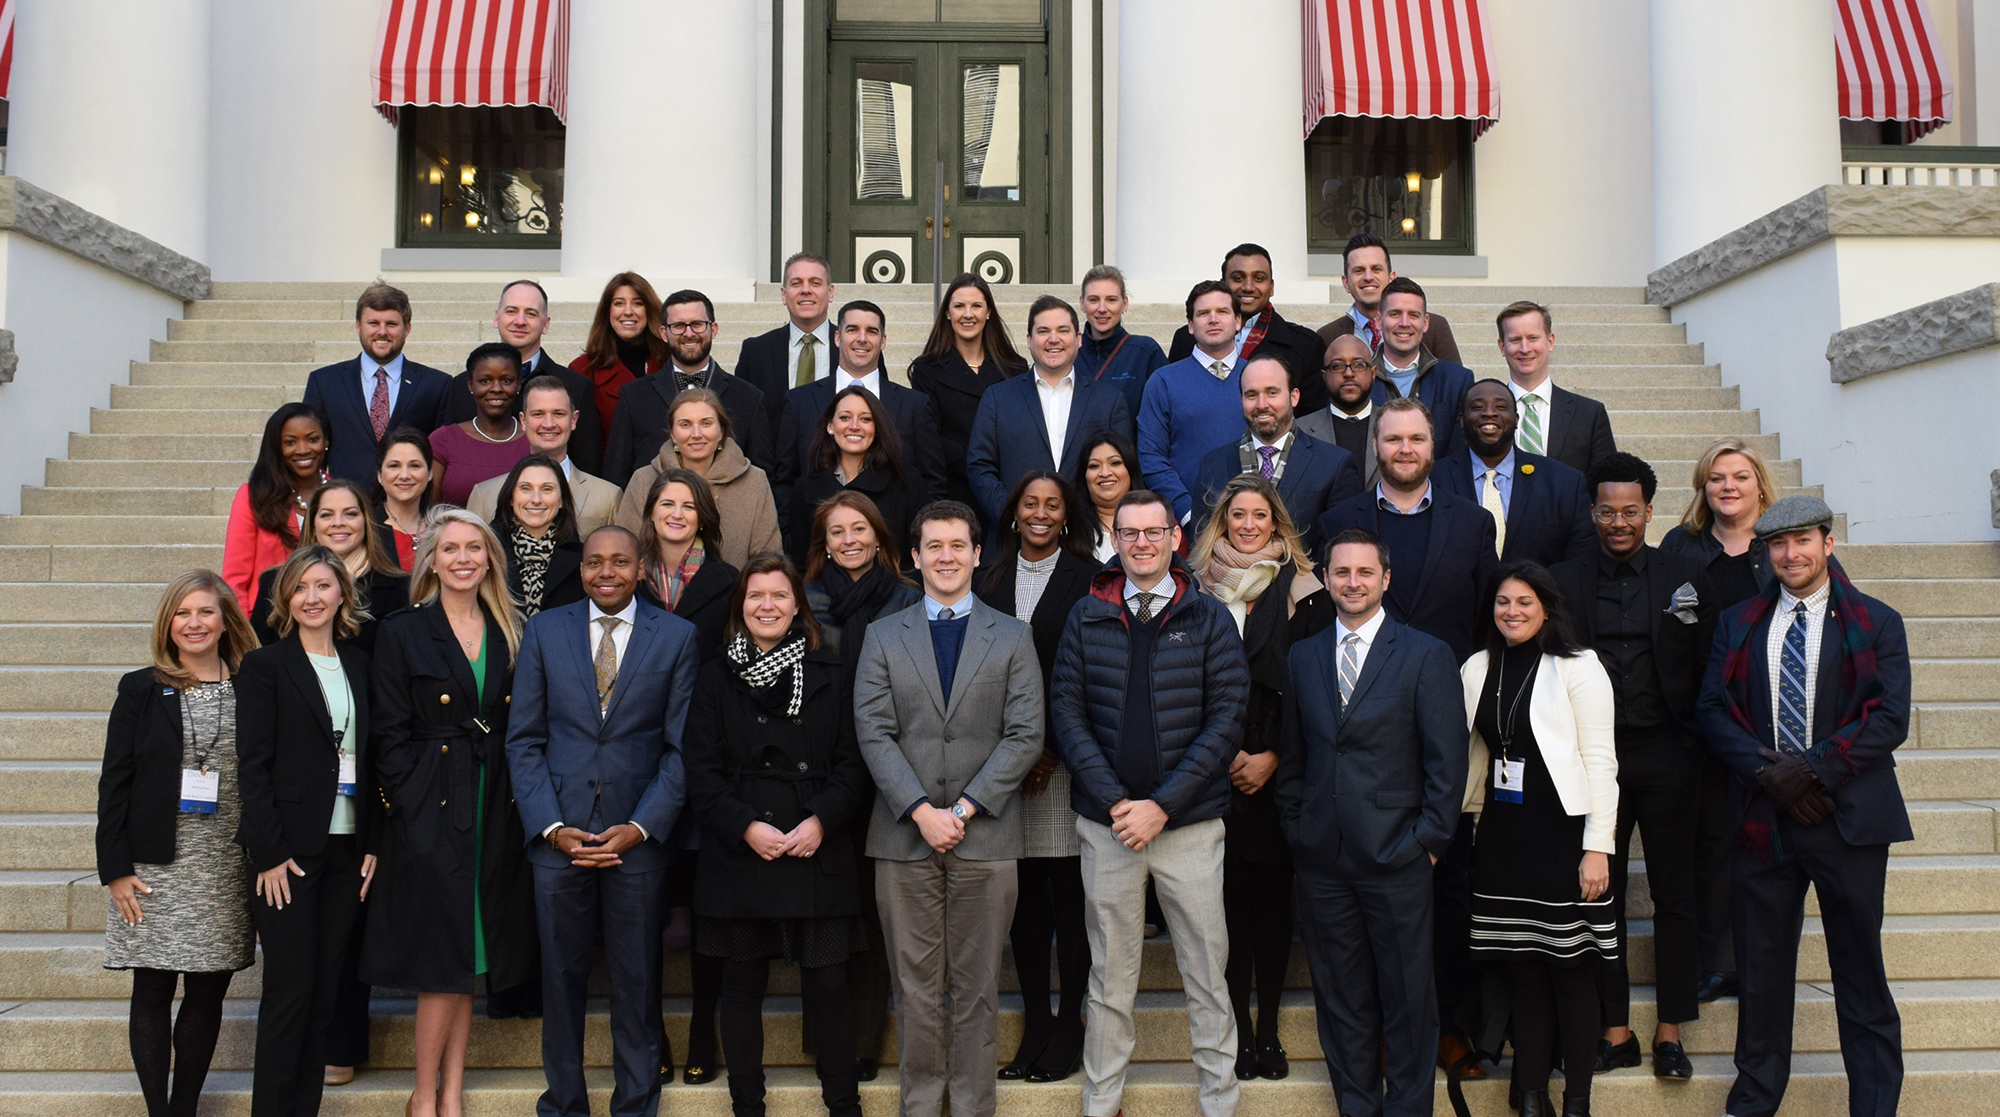 CFL's executive director , Traci Deen, pictured front row, third from left, with Leadership Florida Connect classmates at Florida's Historic Capitol in Tallahassee Florida.